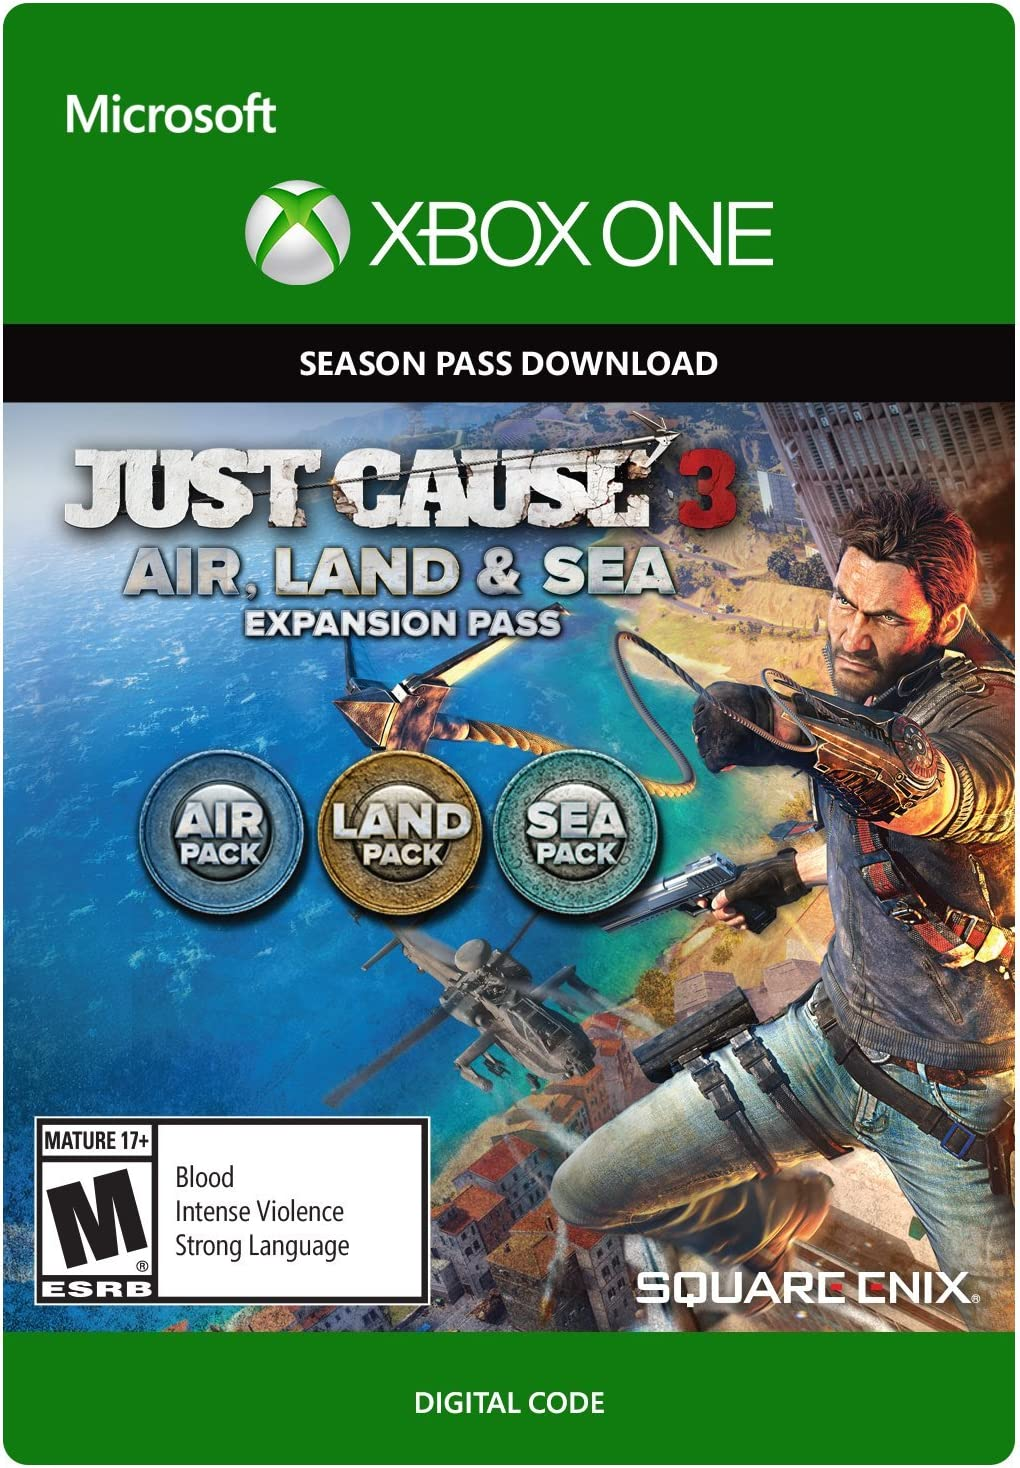 Just Cause 3 Xbox One Digital Code Video Games Little Nightmare Reg